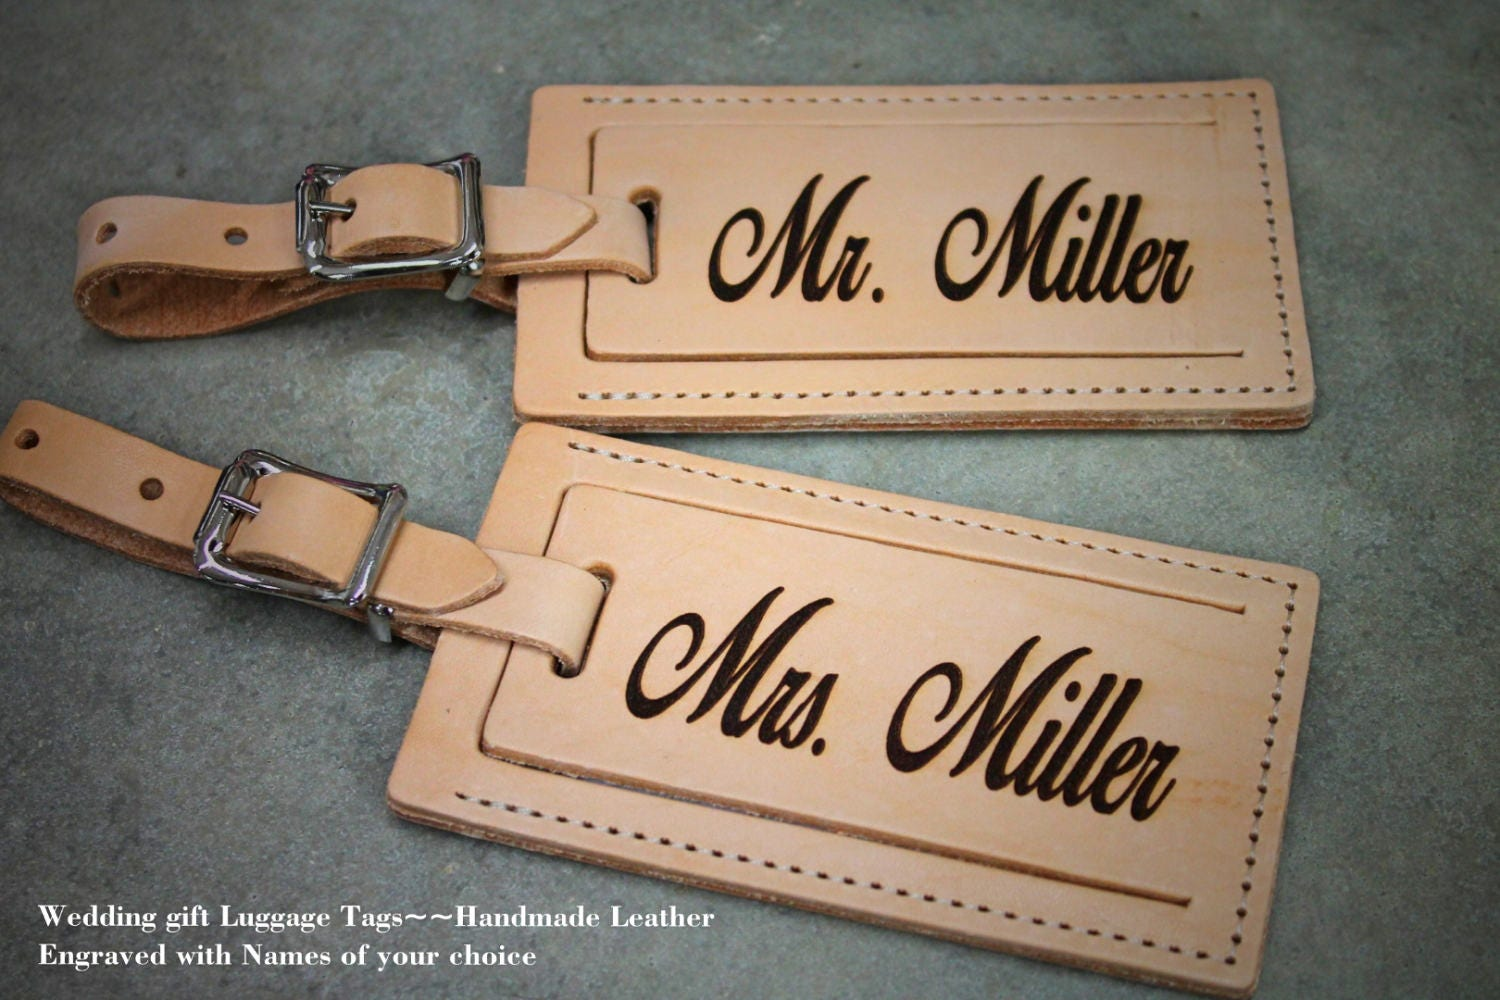 Personalized Luggage Tags Wedding Gift: Wedding Gift Custom Luggage Tag Travel Gift Vacation Gift